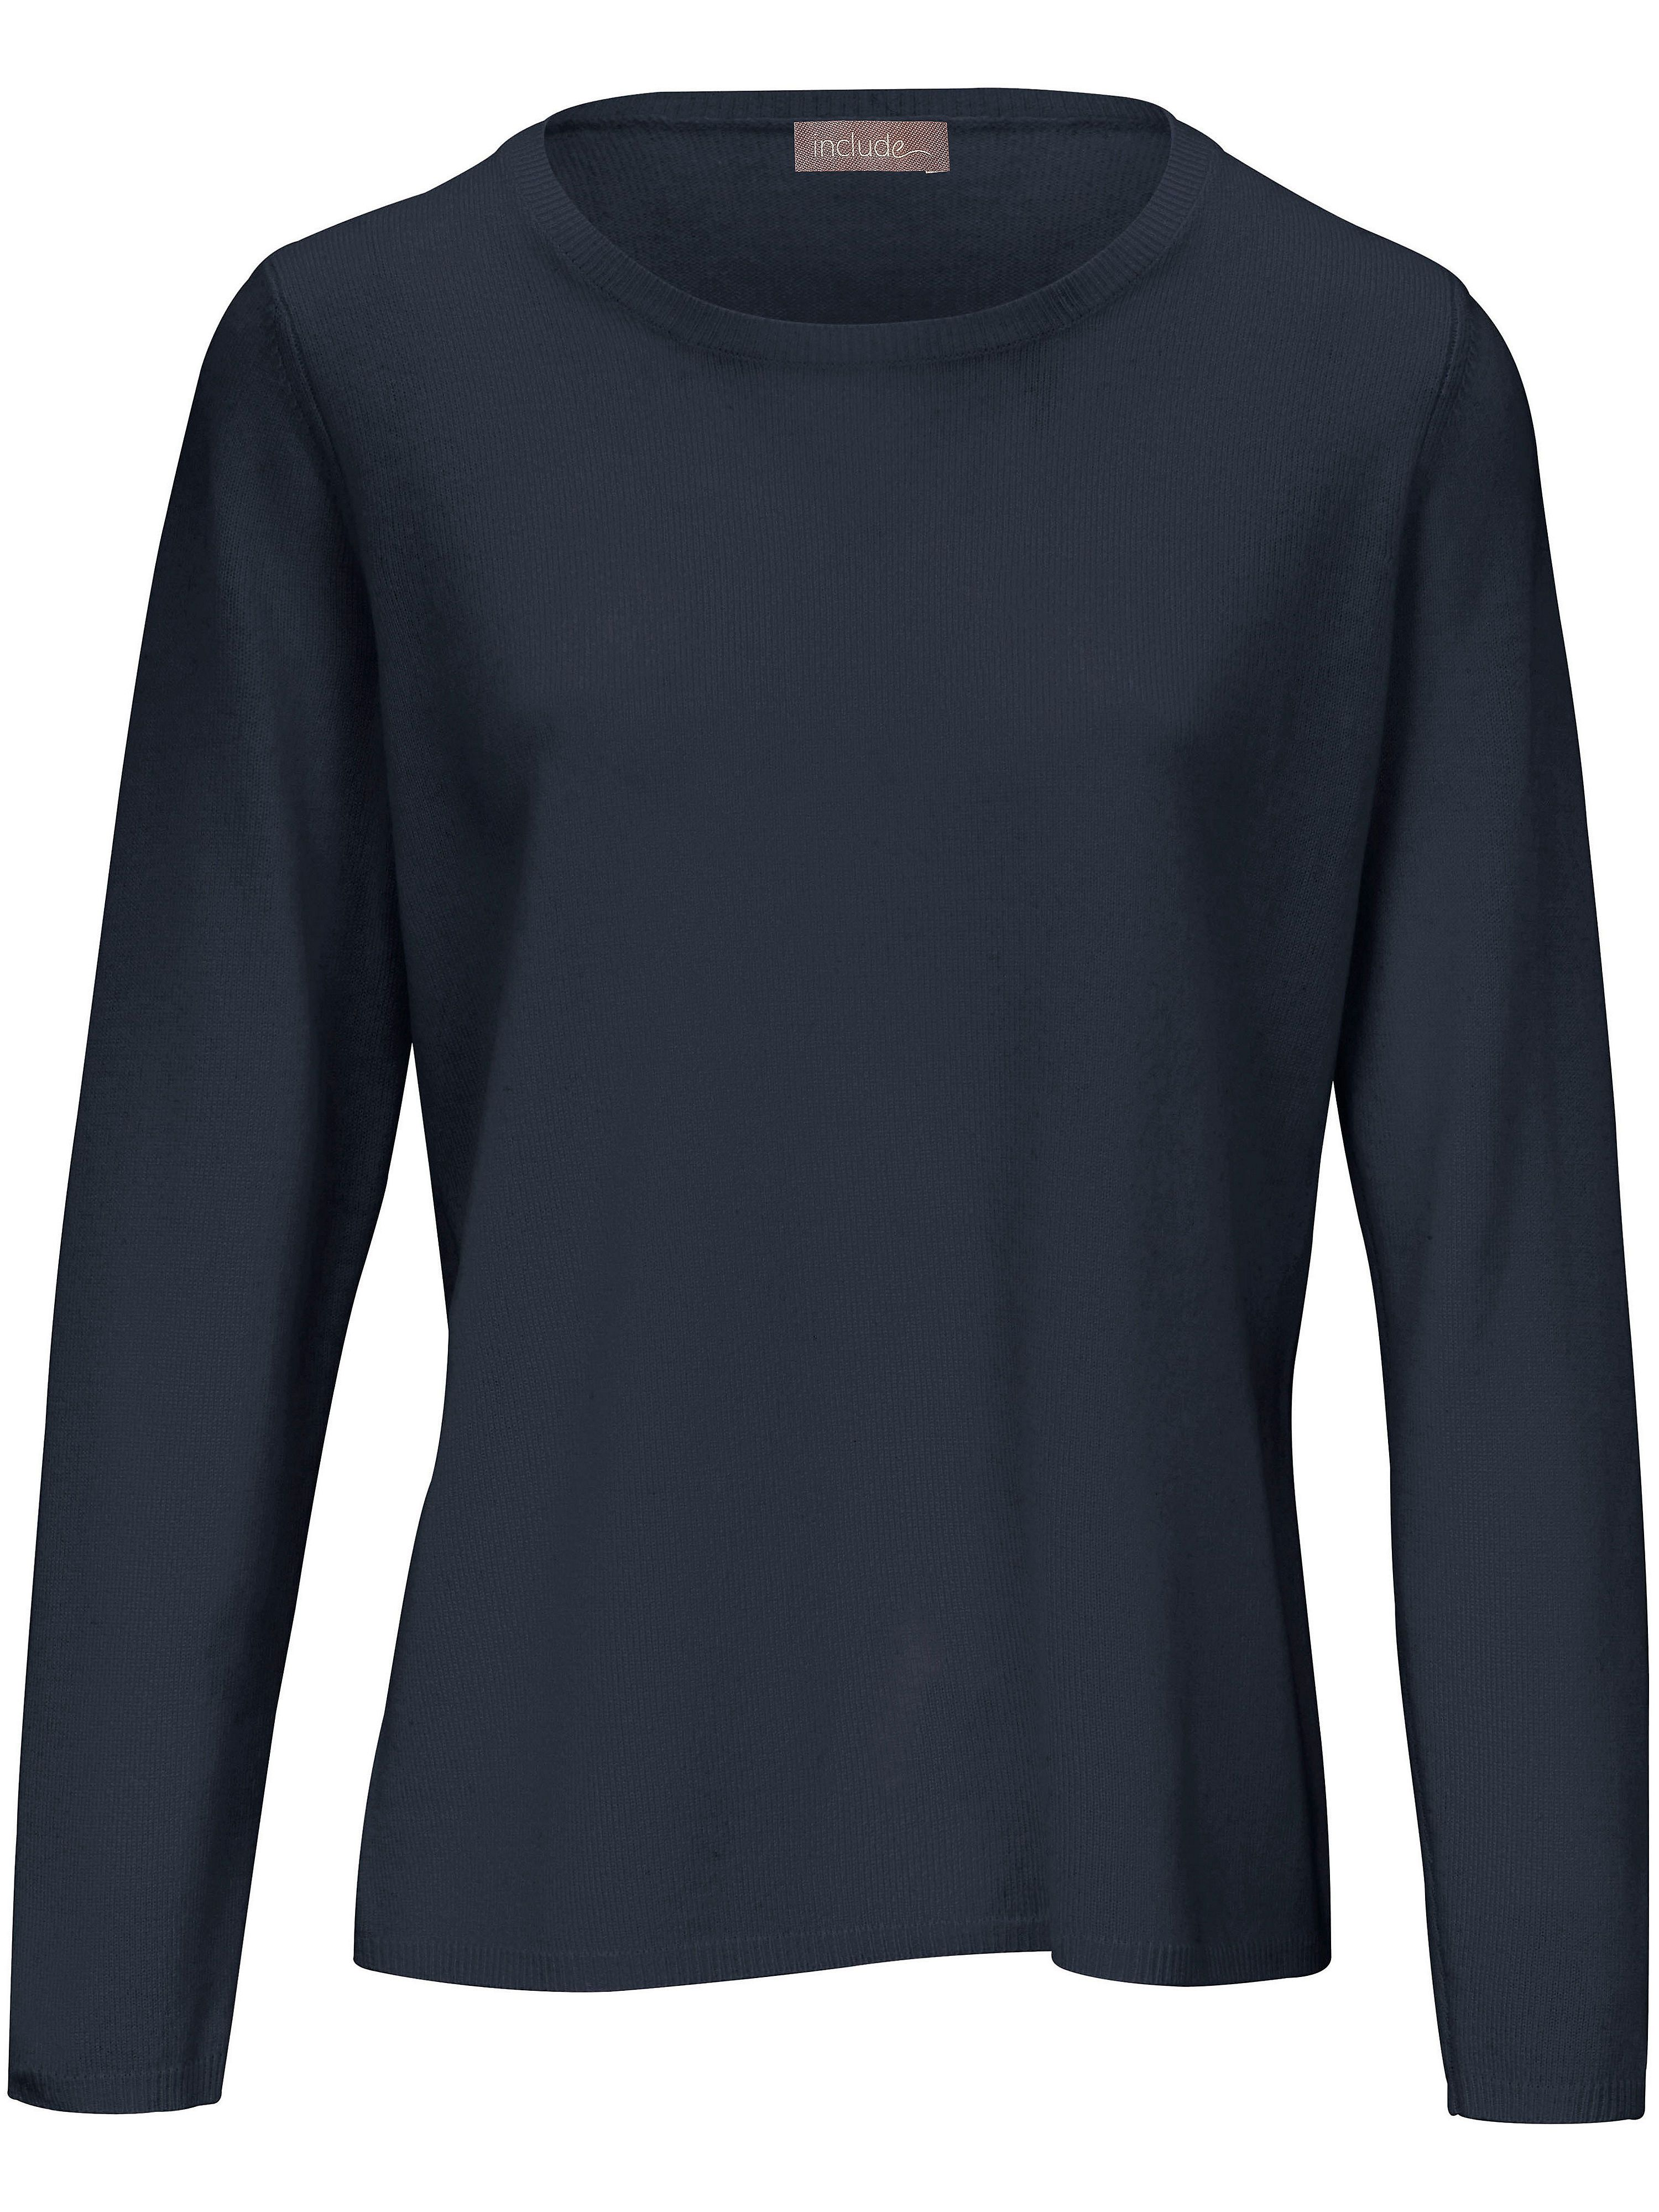 Le pull laine vierge et cachemire include bleu taille 42  8a5904adf12